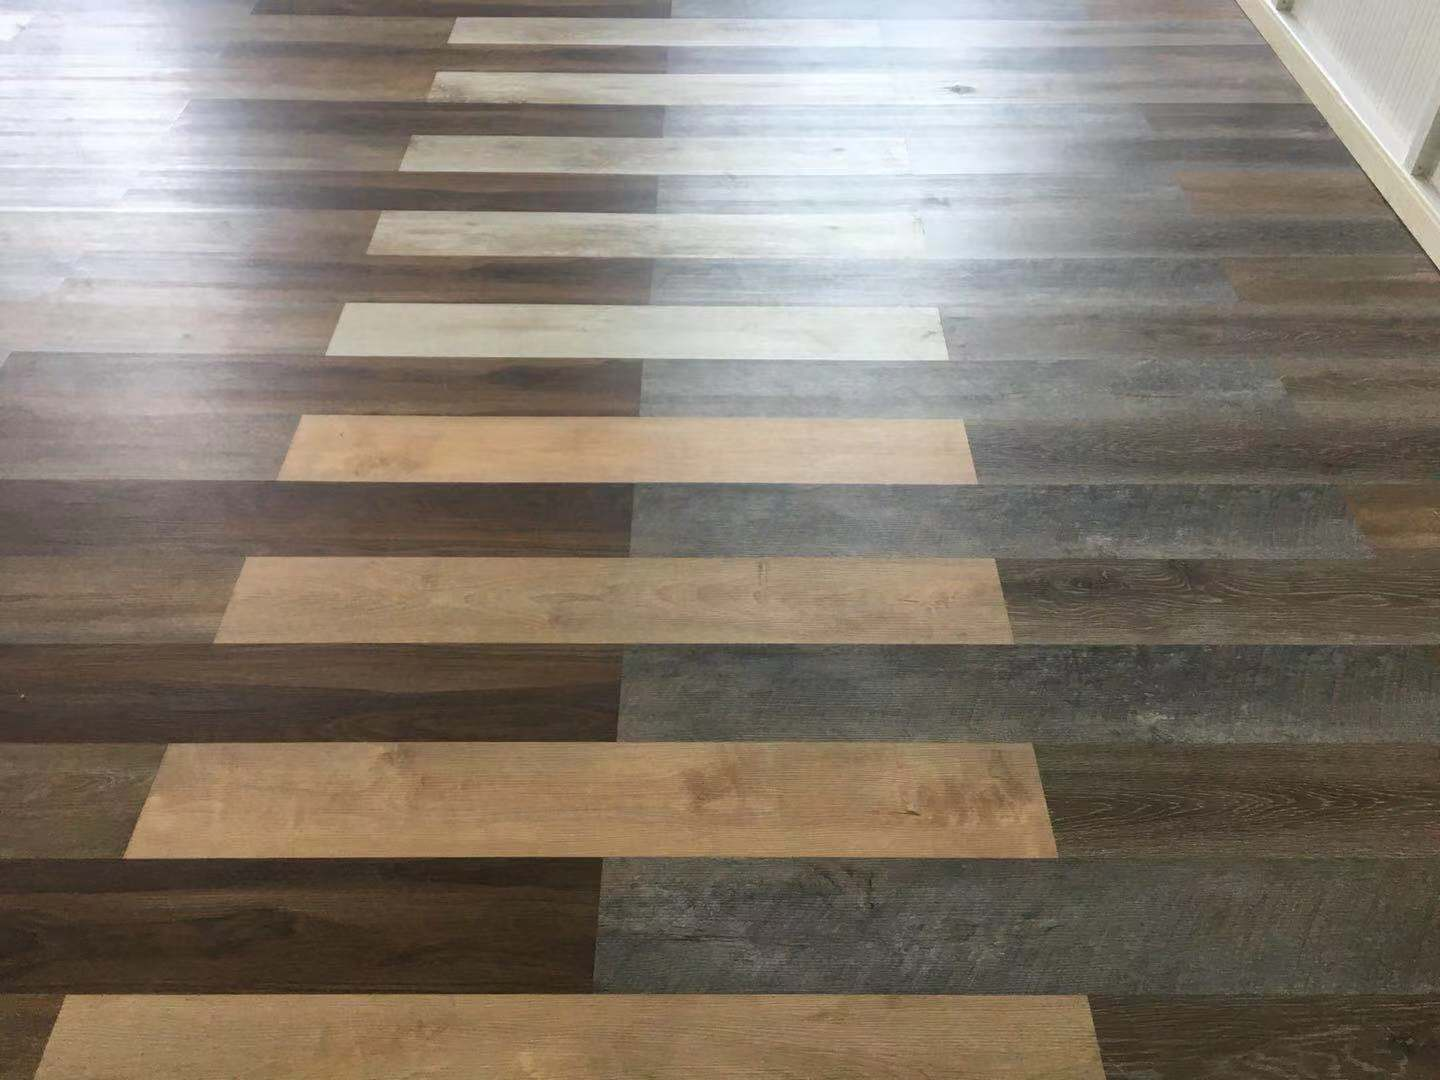 vinyl flooring spc flooring for European Market